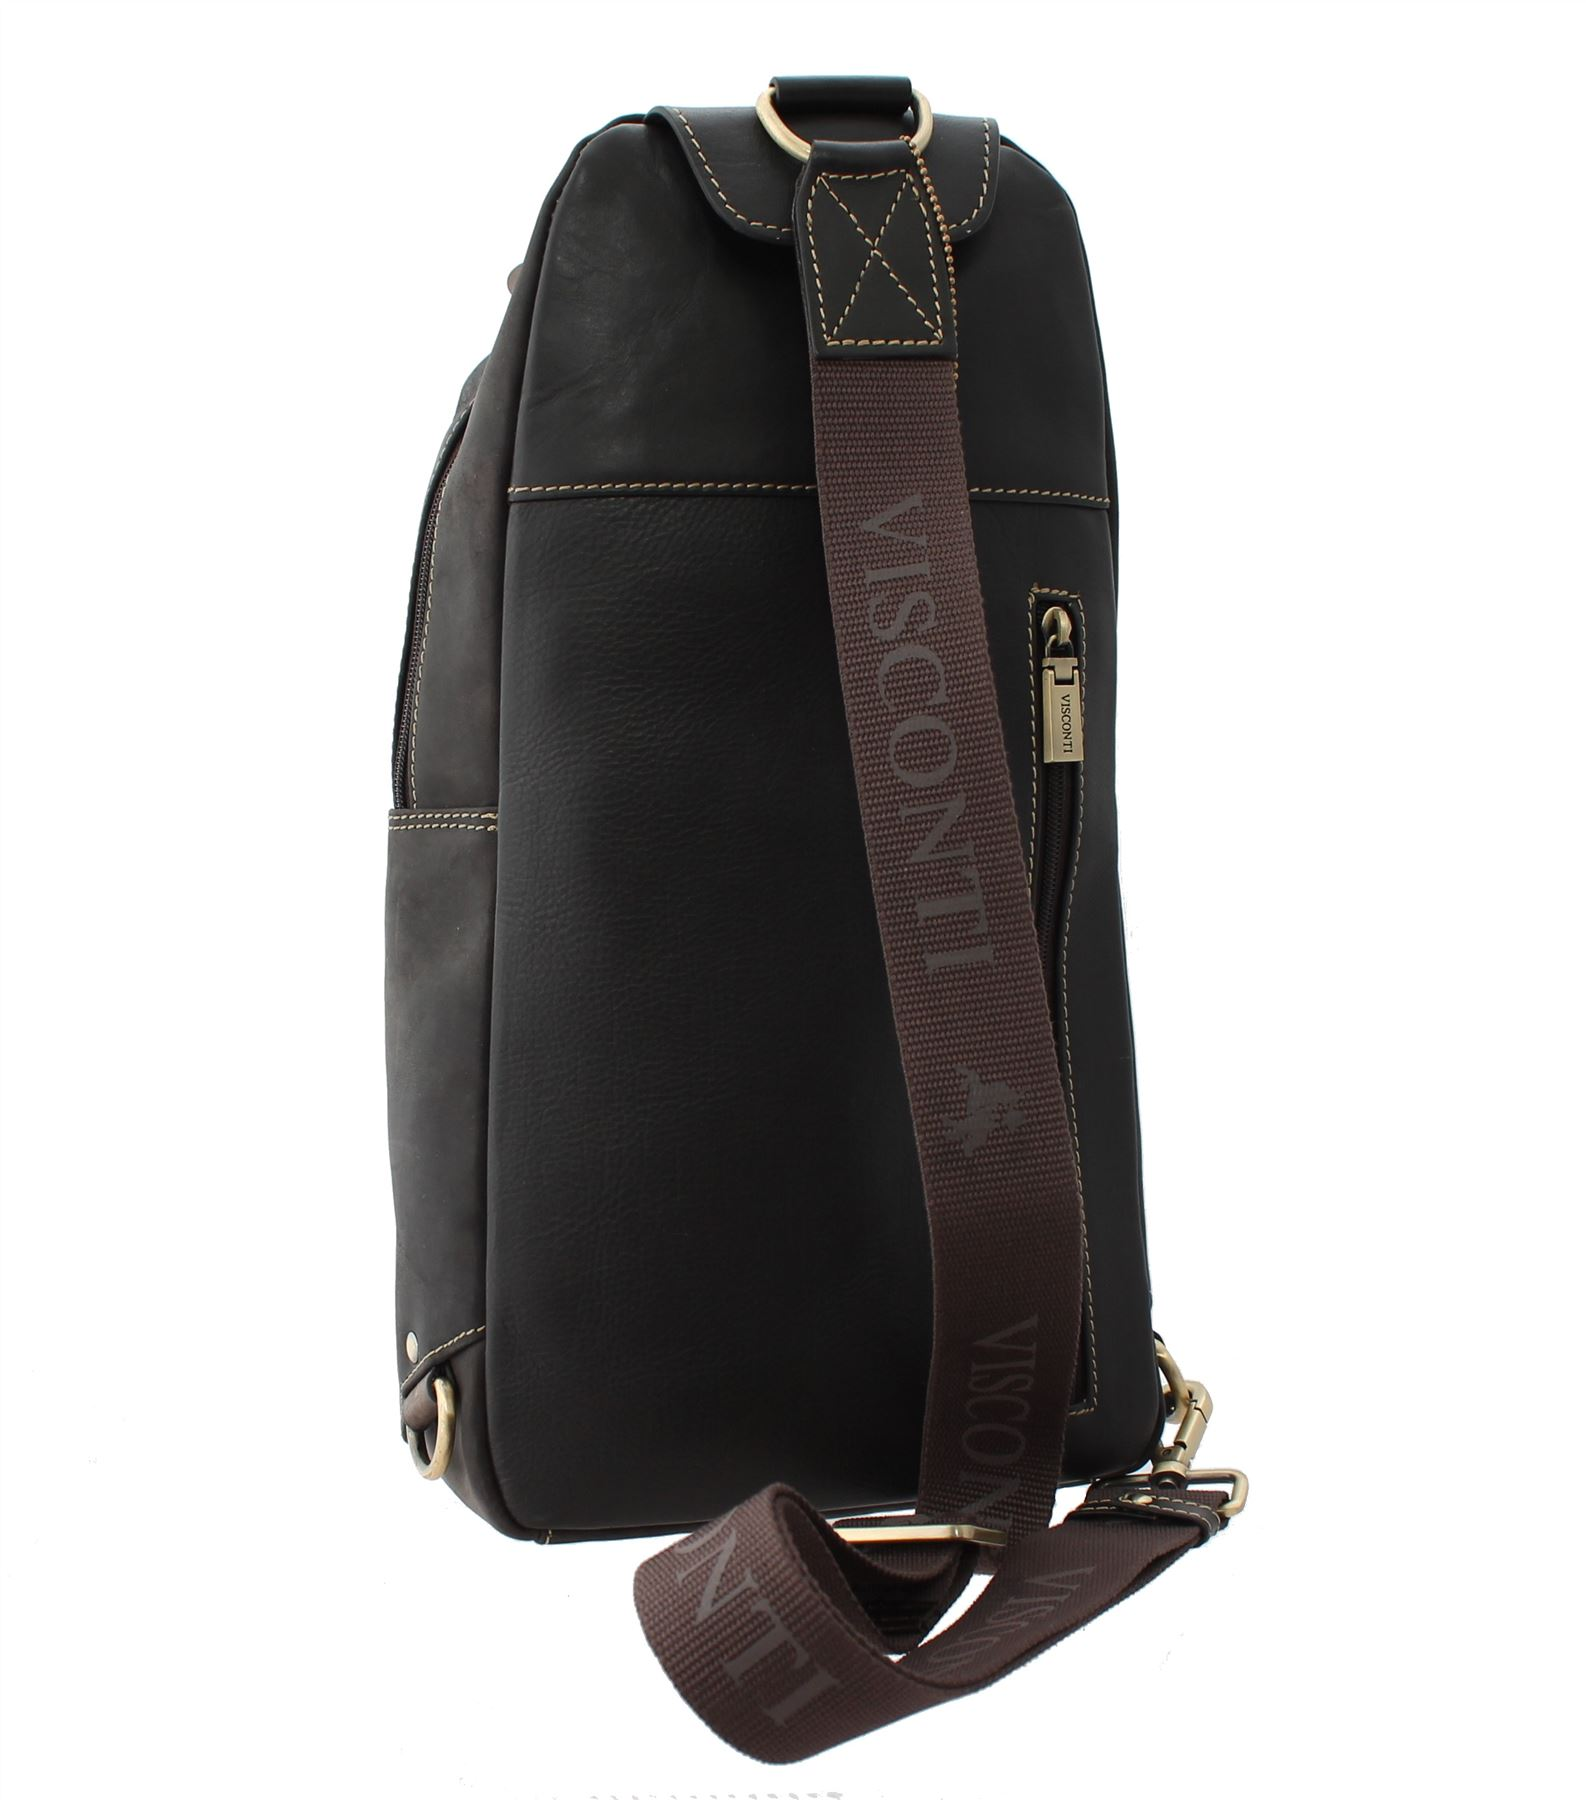 Visconti SHARK Single Strap Oiled Leather Backpack 16132 | eBay